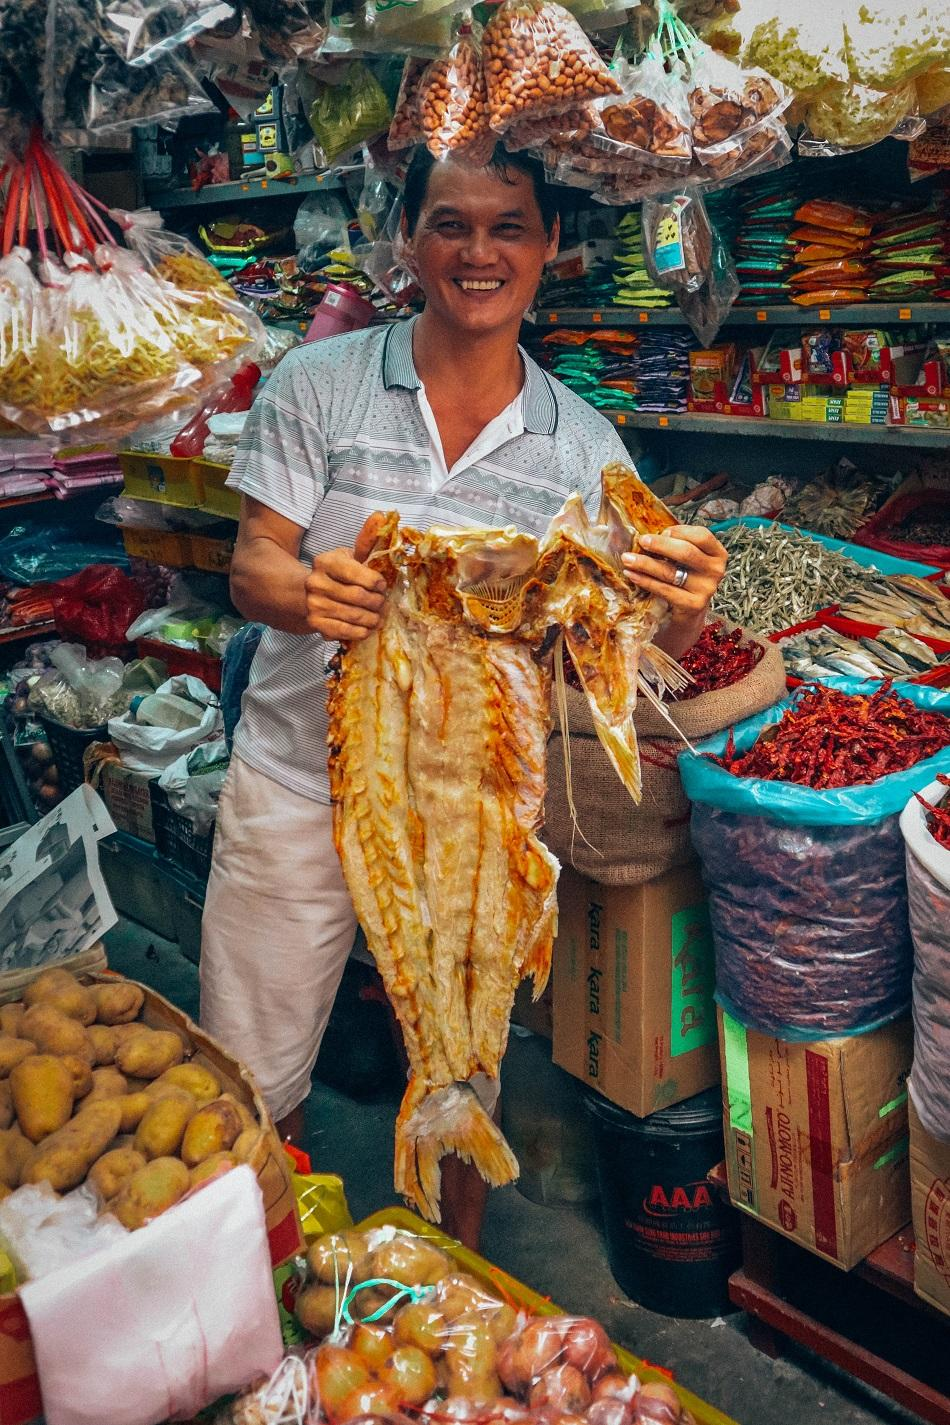 kristang culinary journey with Chef Melba at The Majestic Malacca - visiting a local market